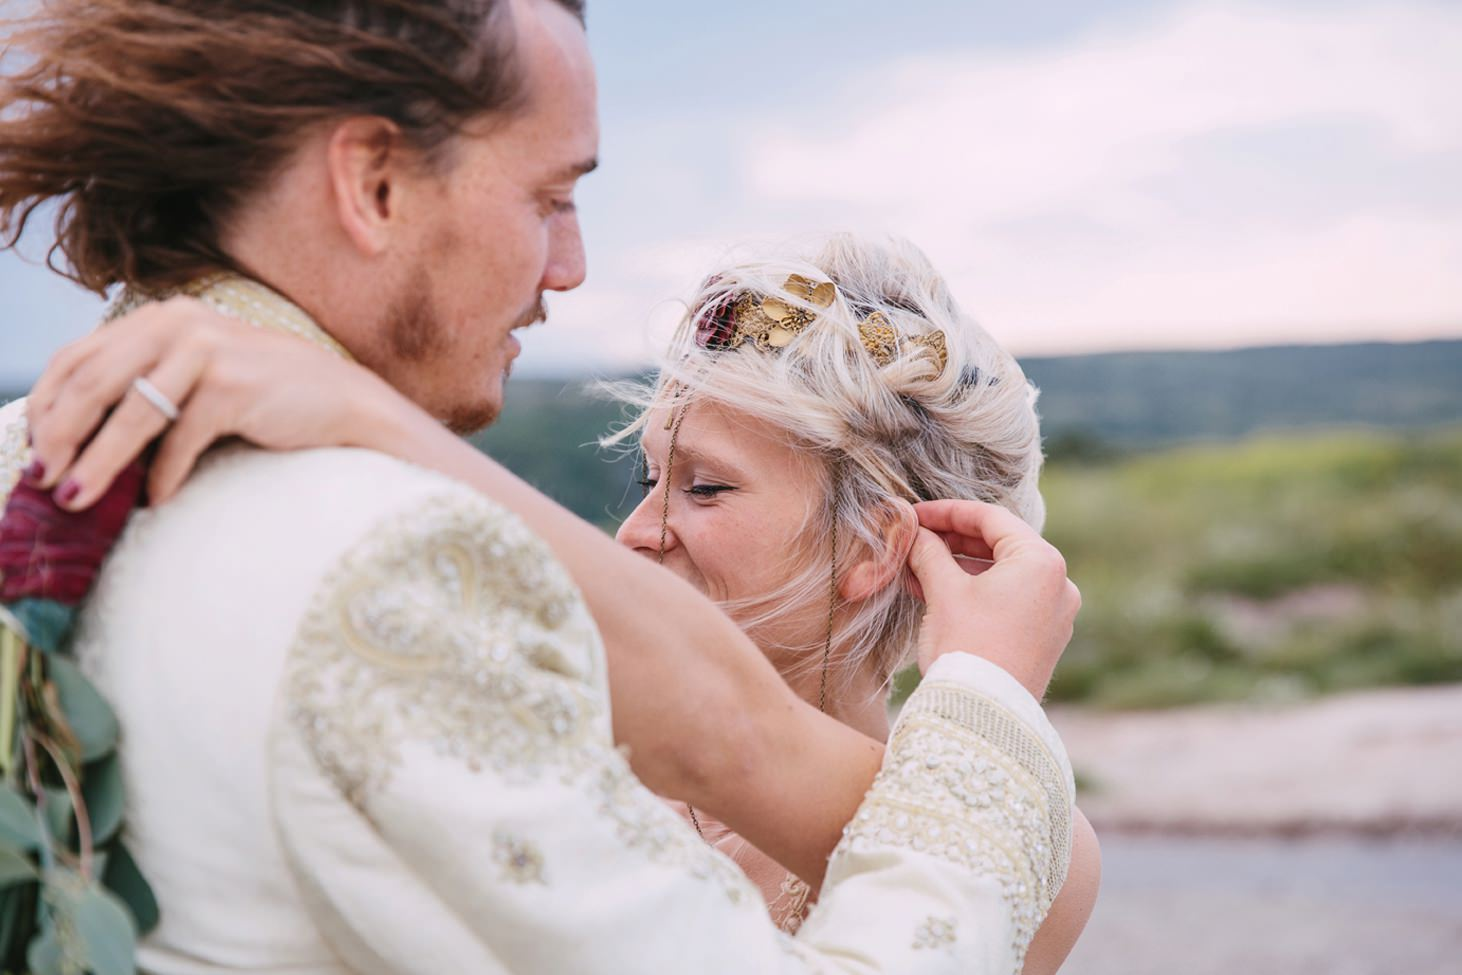 sle of bute wedding photography tender bride and groom